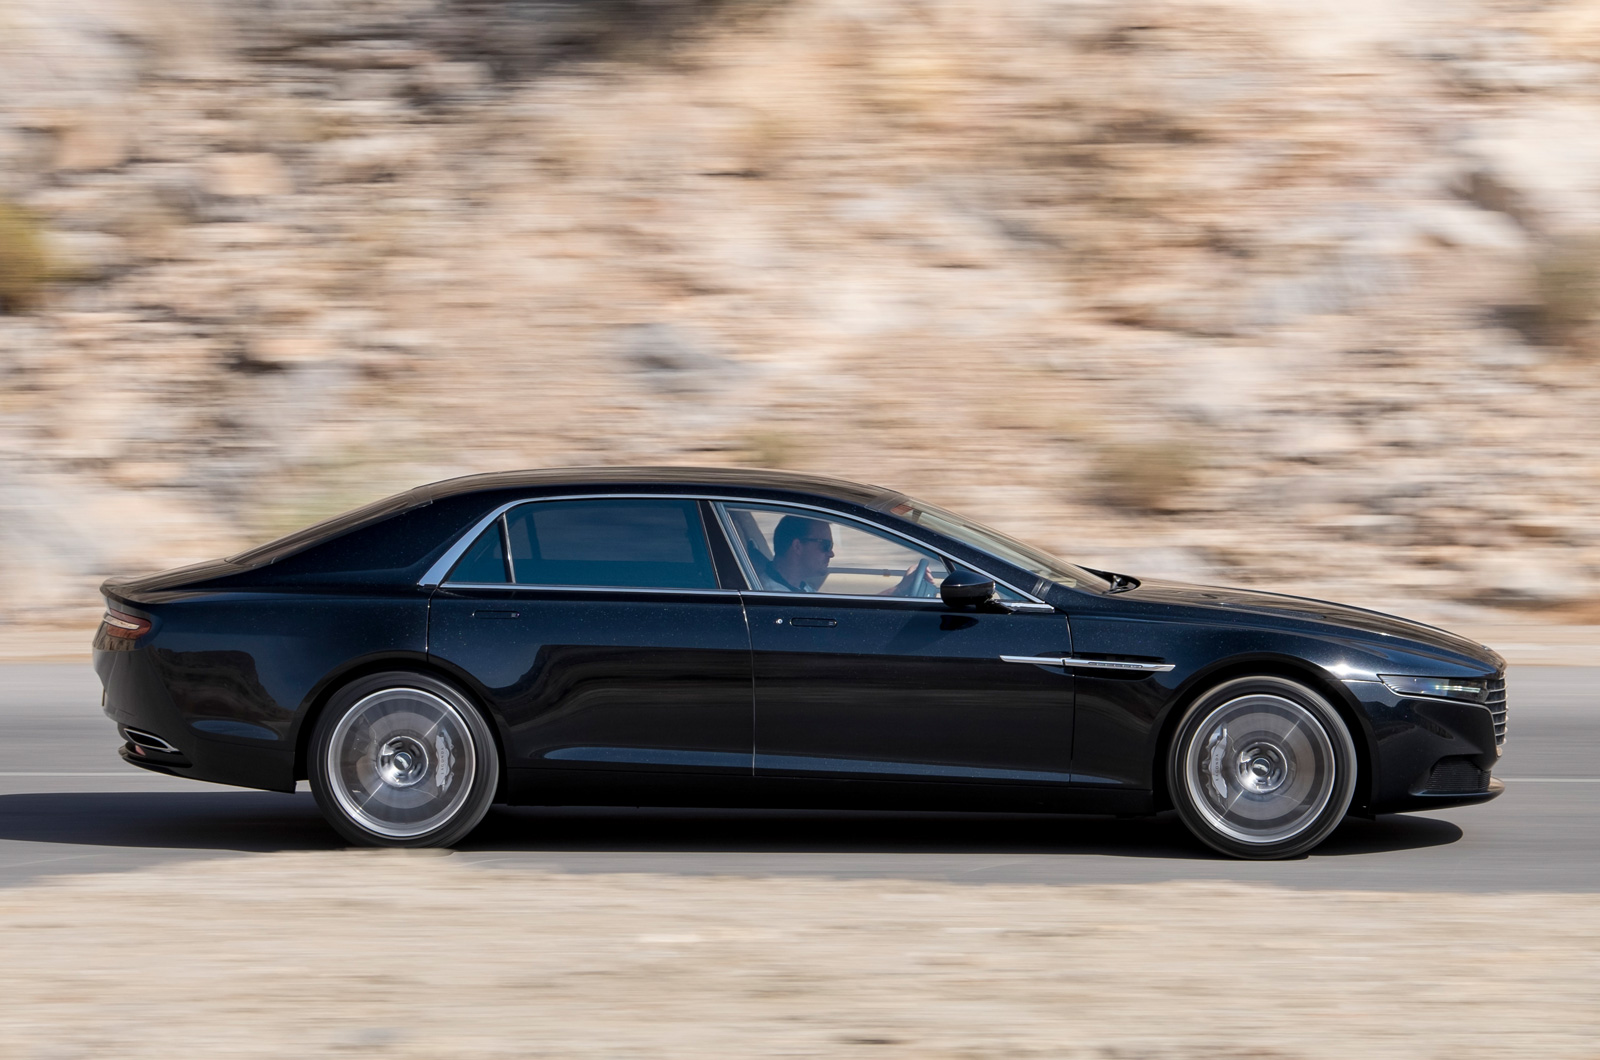 2019 Aston Martin Lagonda V12 Rapide photo - 6